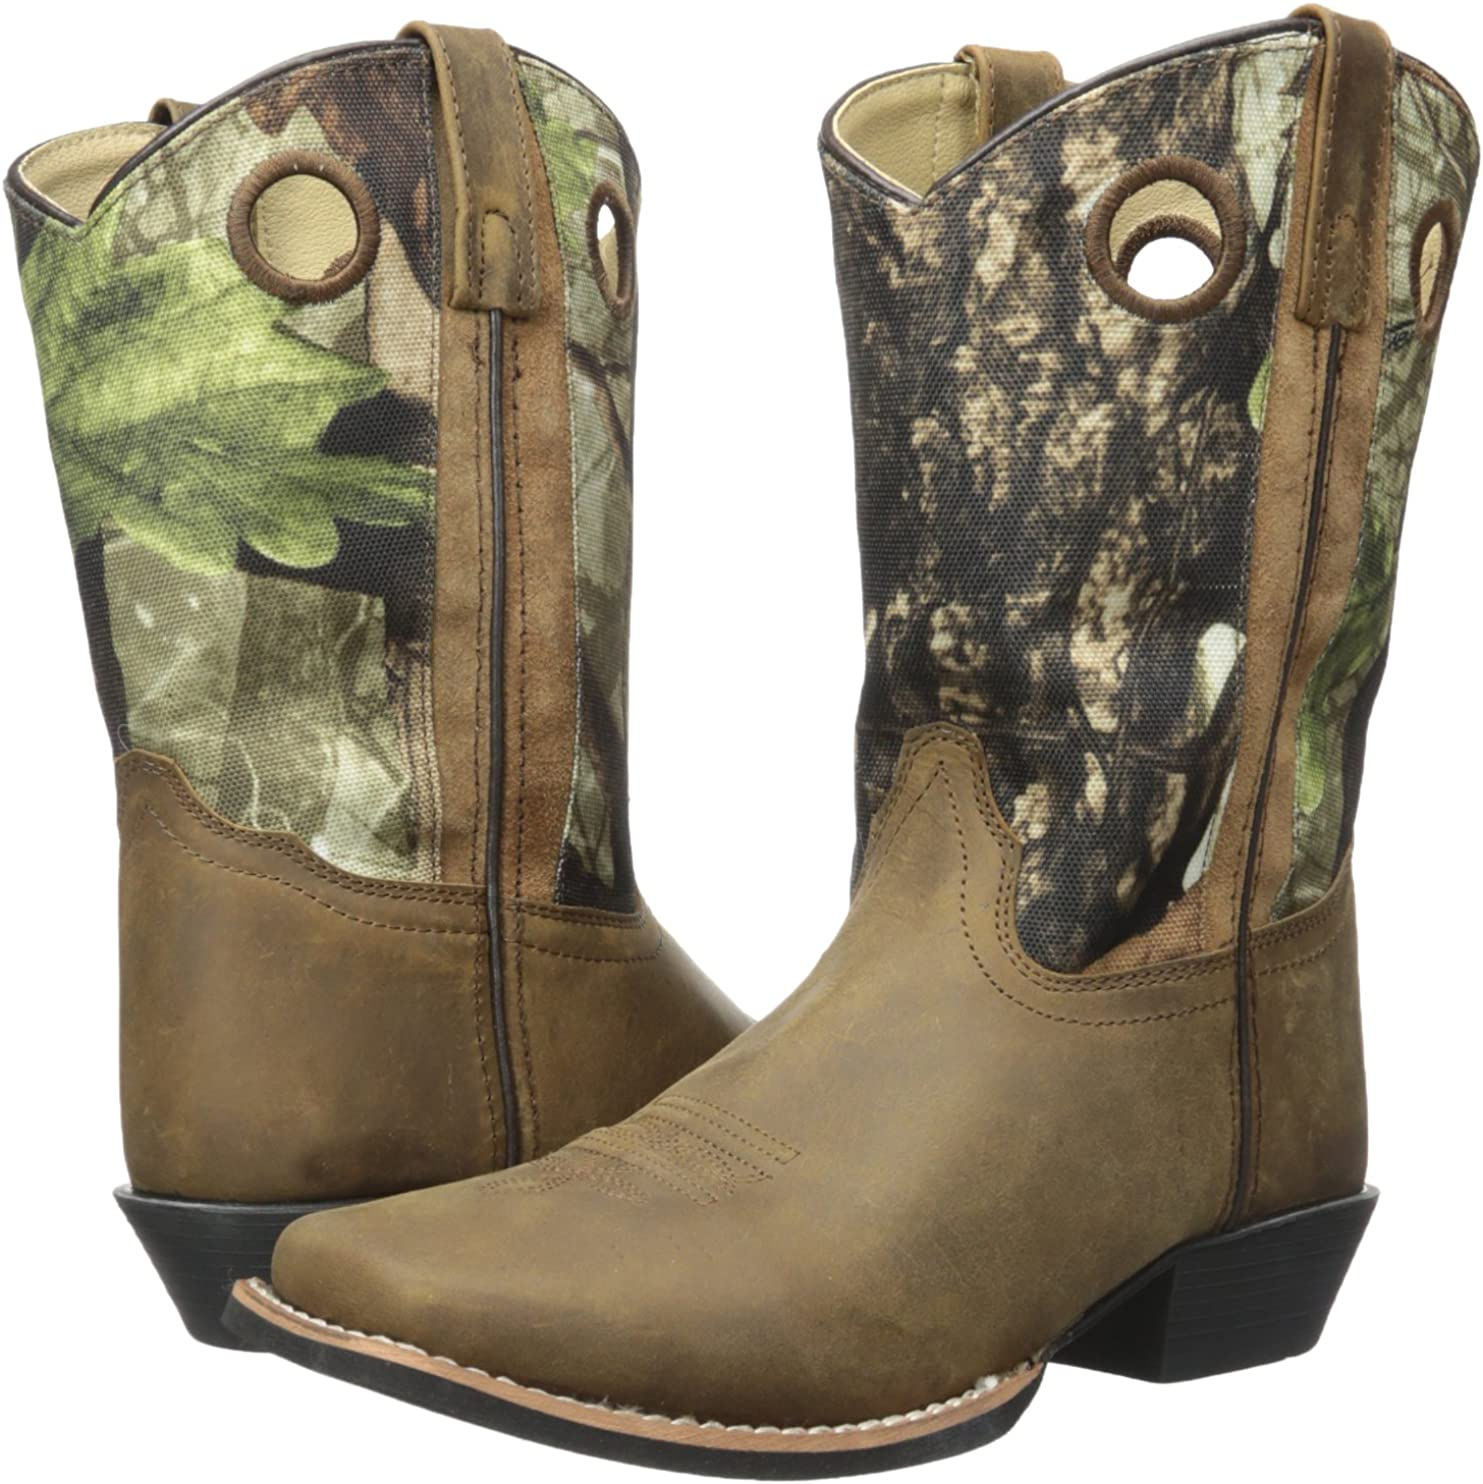 Smoky Mountain Boots | Mesa Series | Youth Western Boot | Square Toe | Quality Leather | Rubber Sole & Western Heel | Man-Made Lining